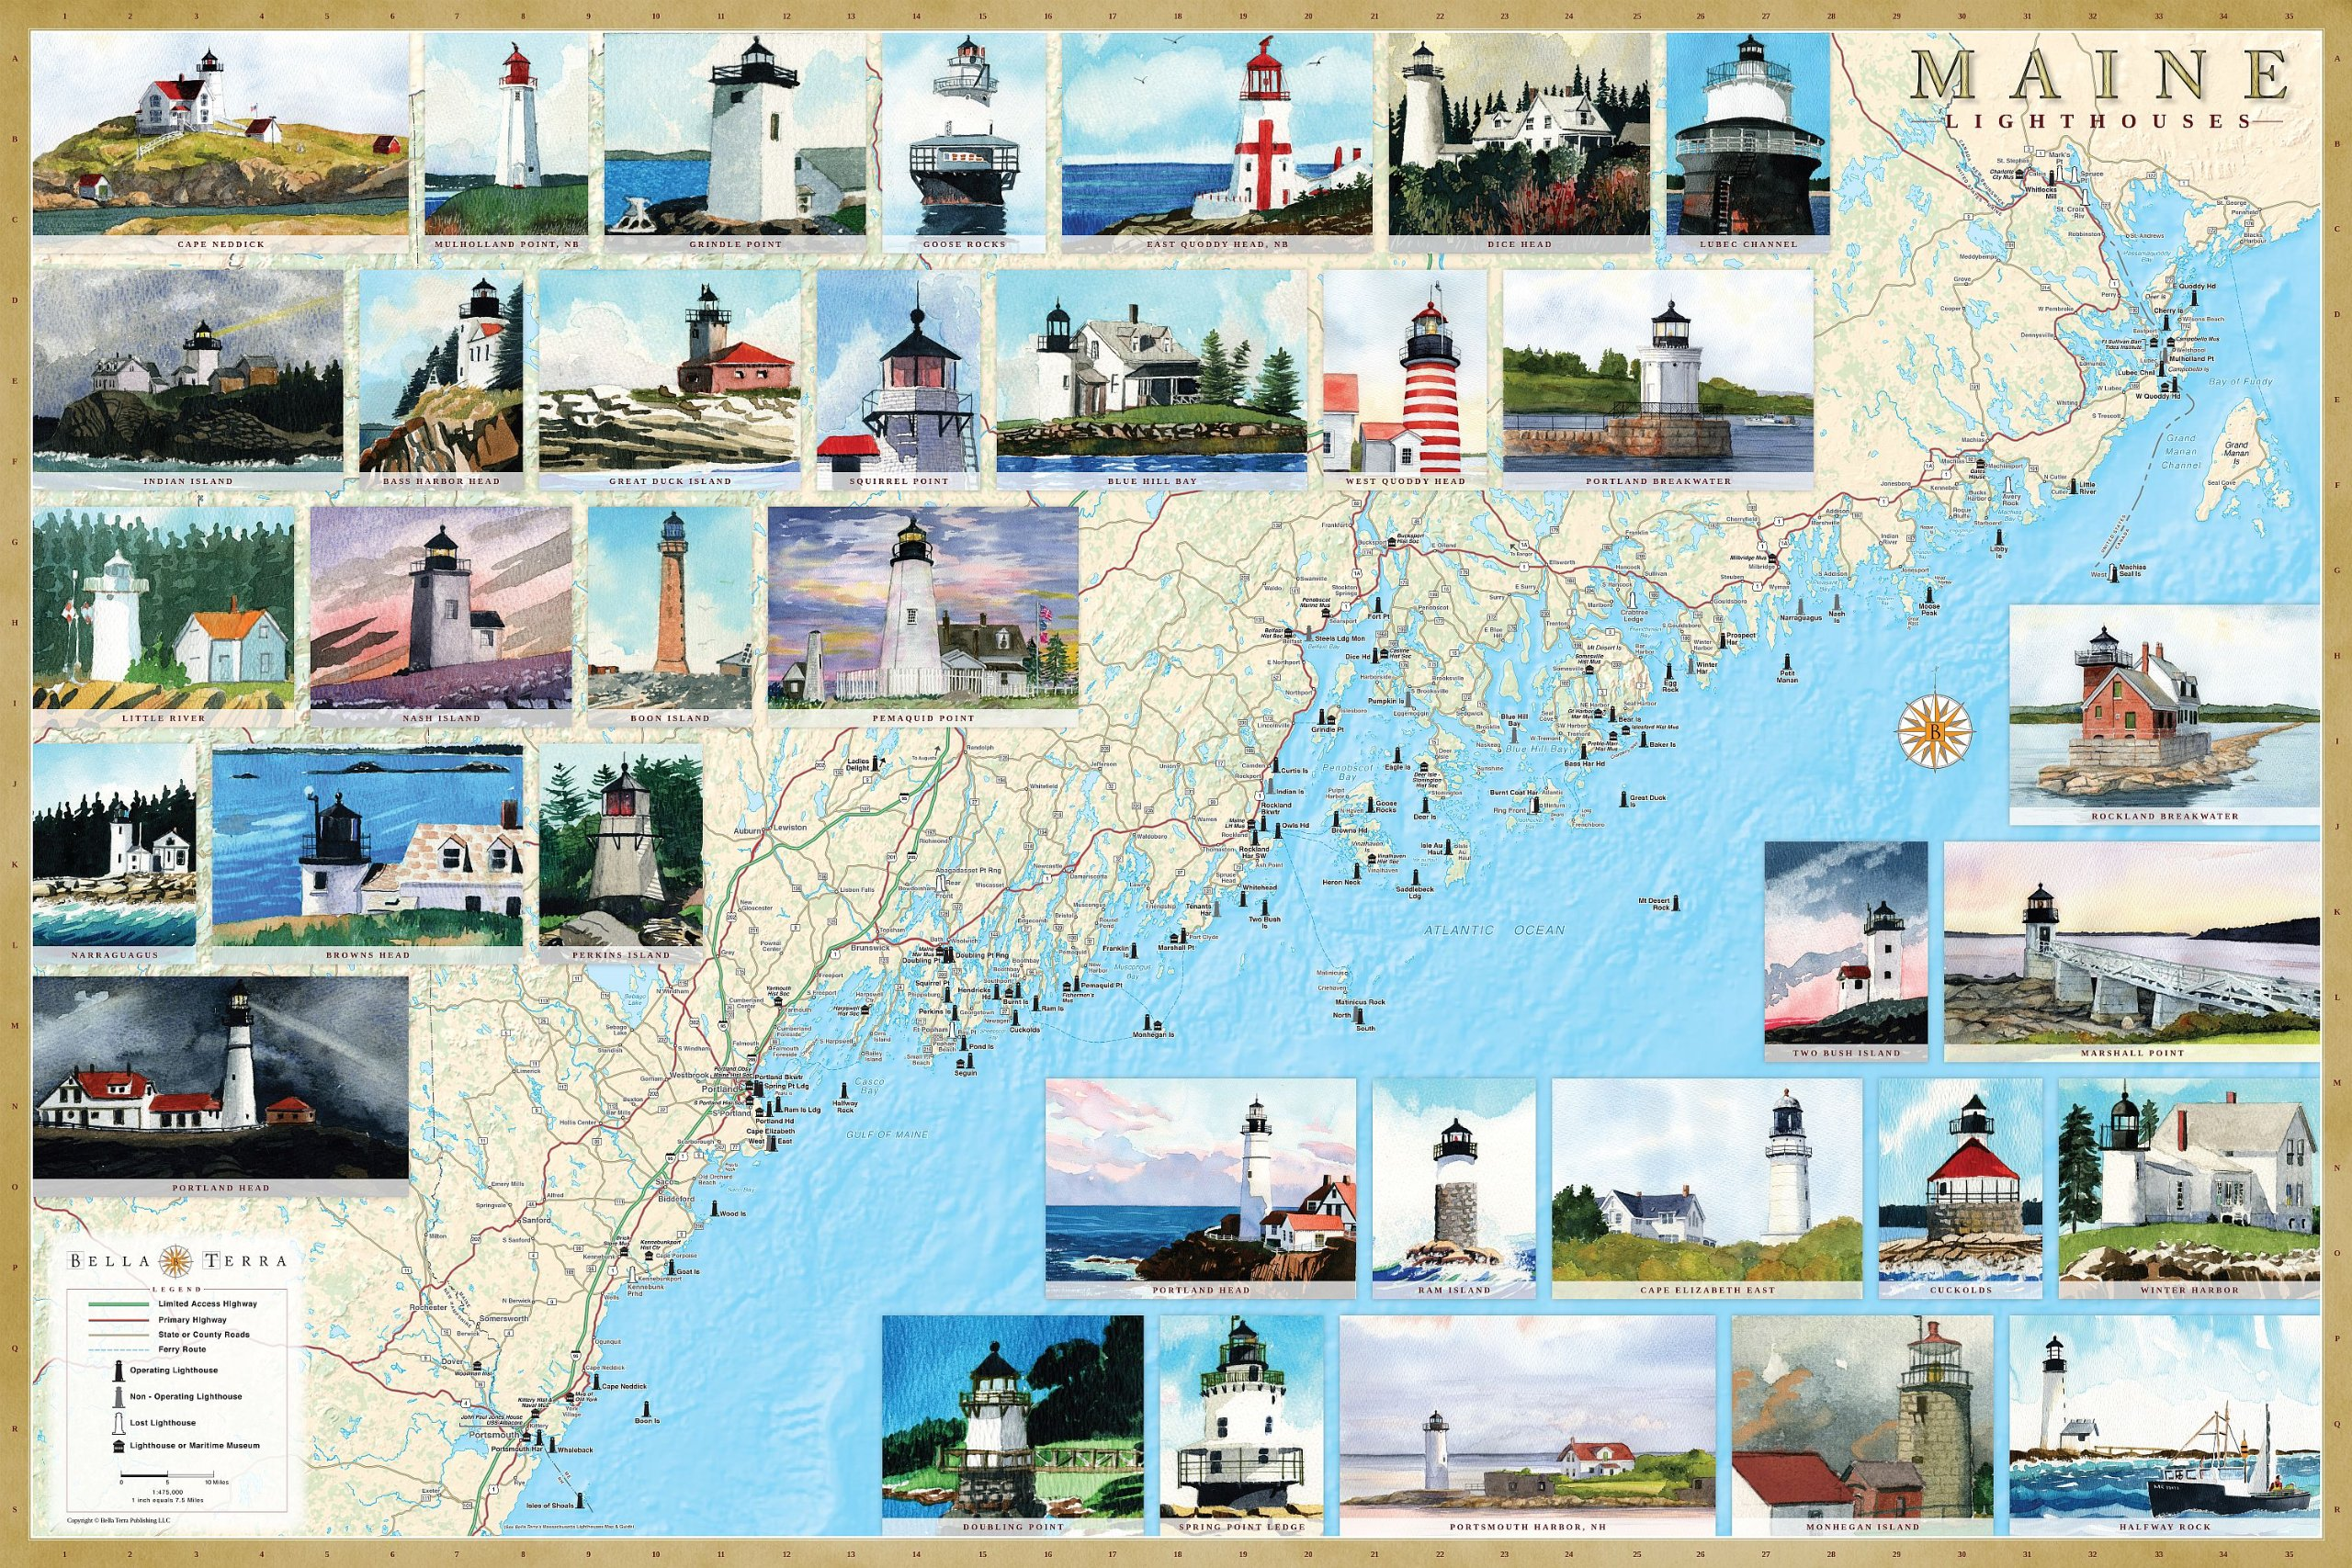 Maine Lighthouse Map Maine Lighthouse Map | compressportnederland Maine Lighthouse Map